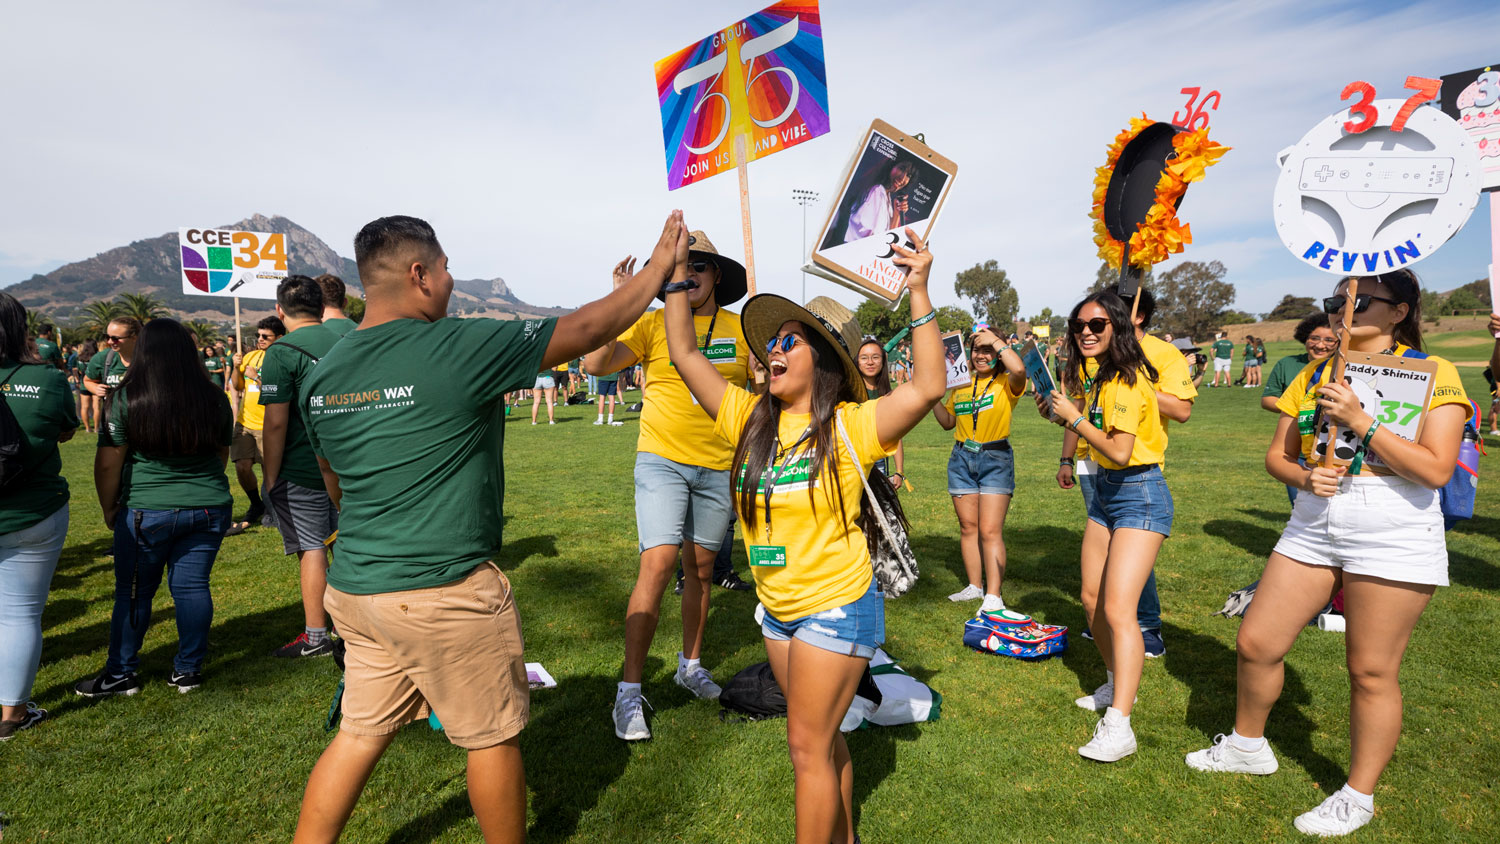 A WOW leader and group member high five enthusiastically at Cal Poly